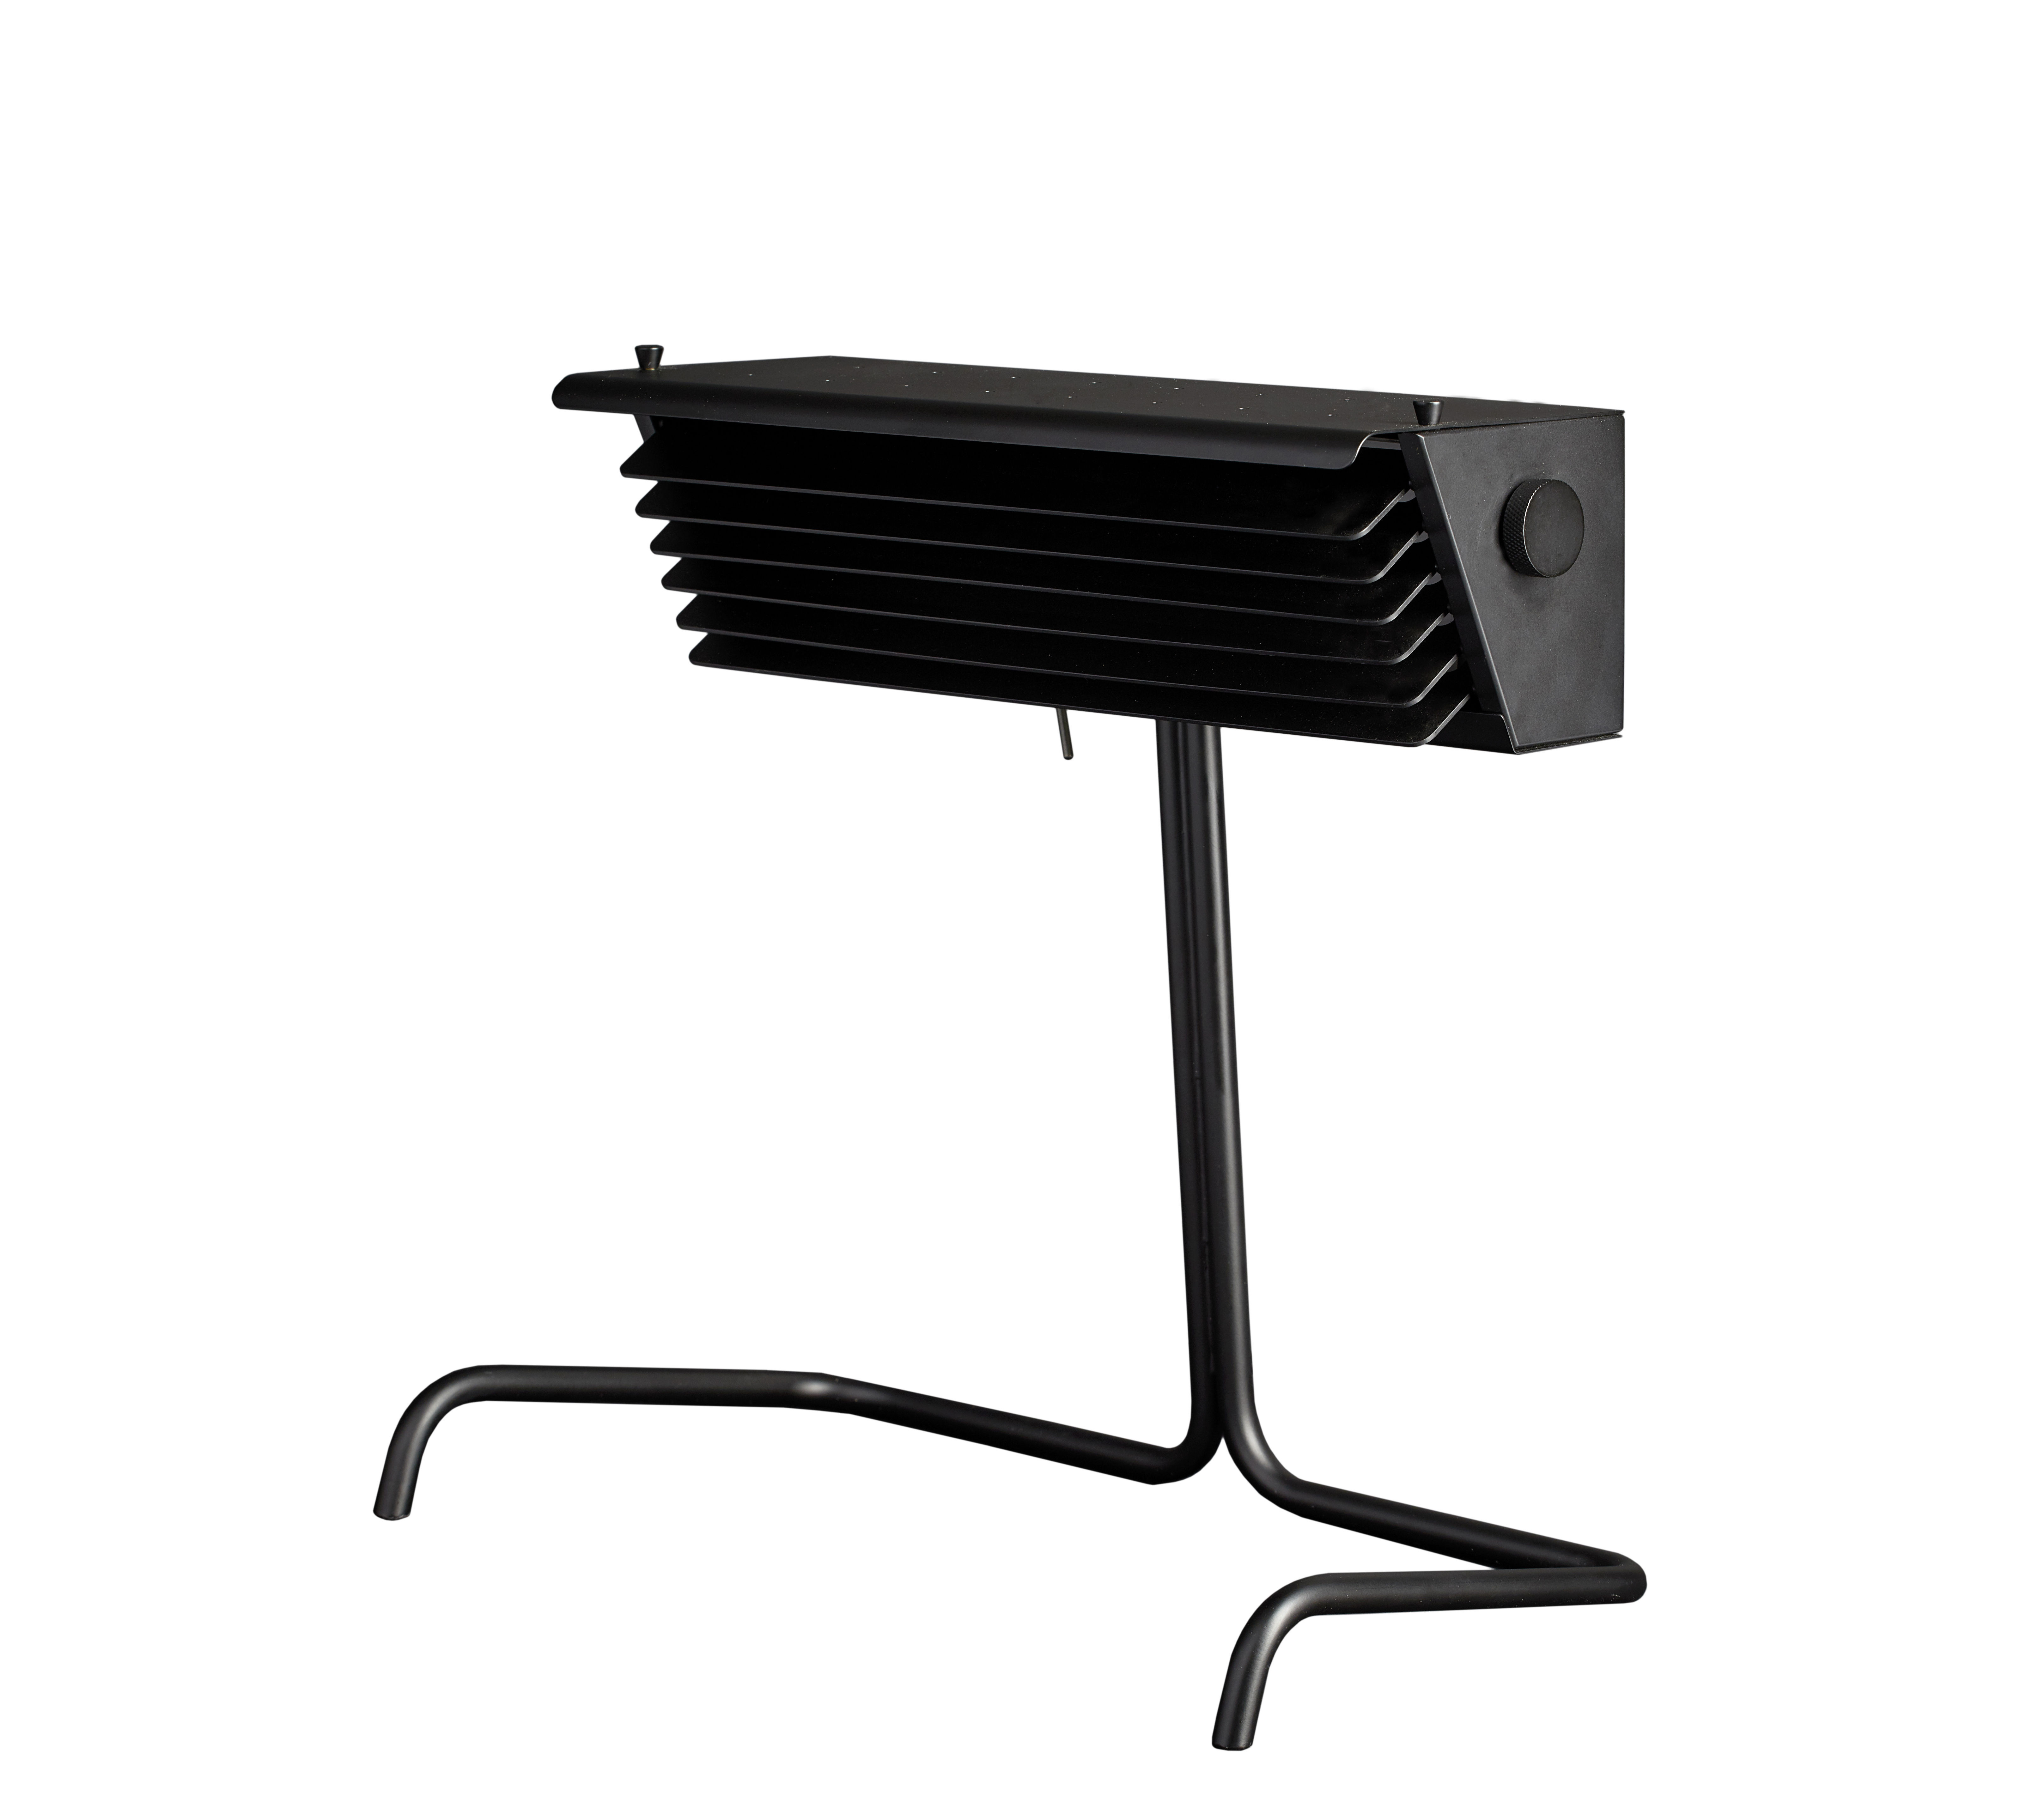 Lighting - Table Lamps - Biny LED Table lamp - / 1957 reissue - H 33 cm by DCW éditions - Black / Black fins - Aluminium, Steel